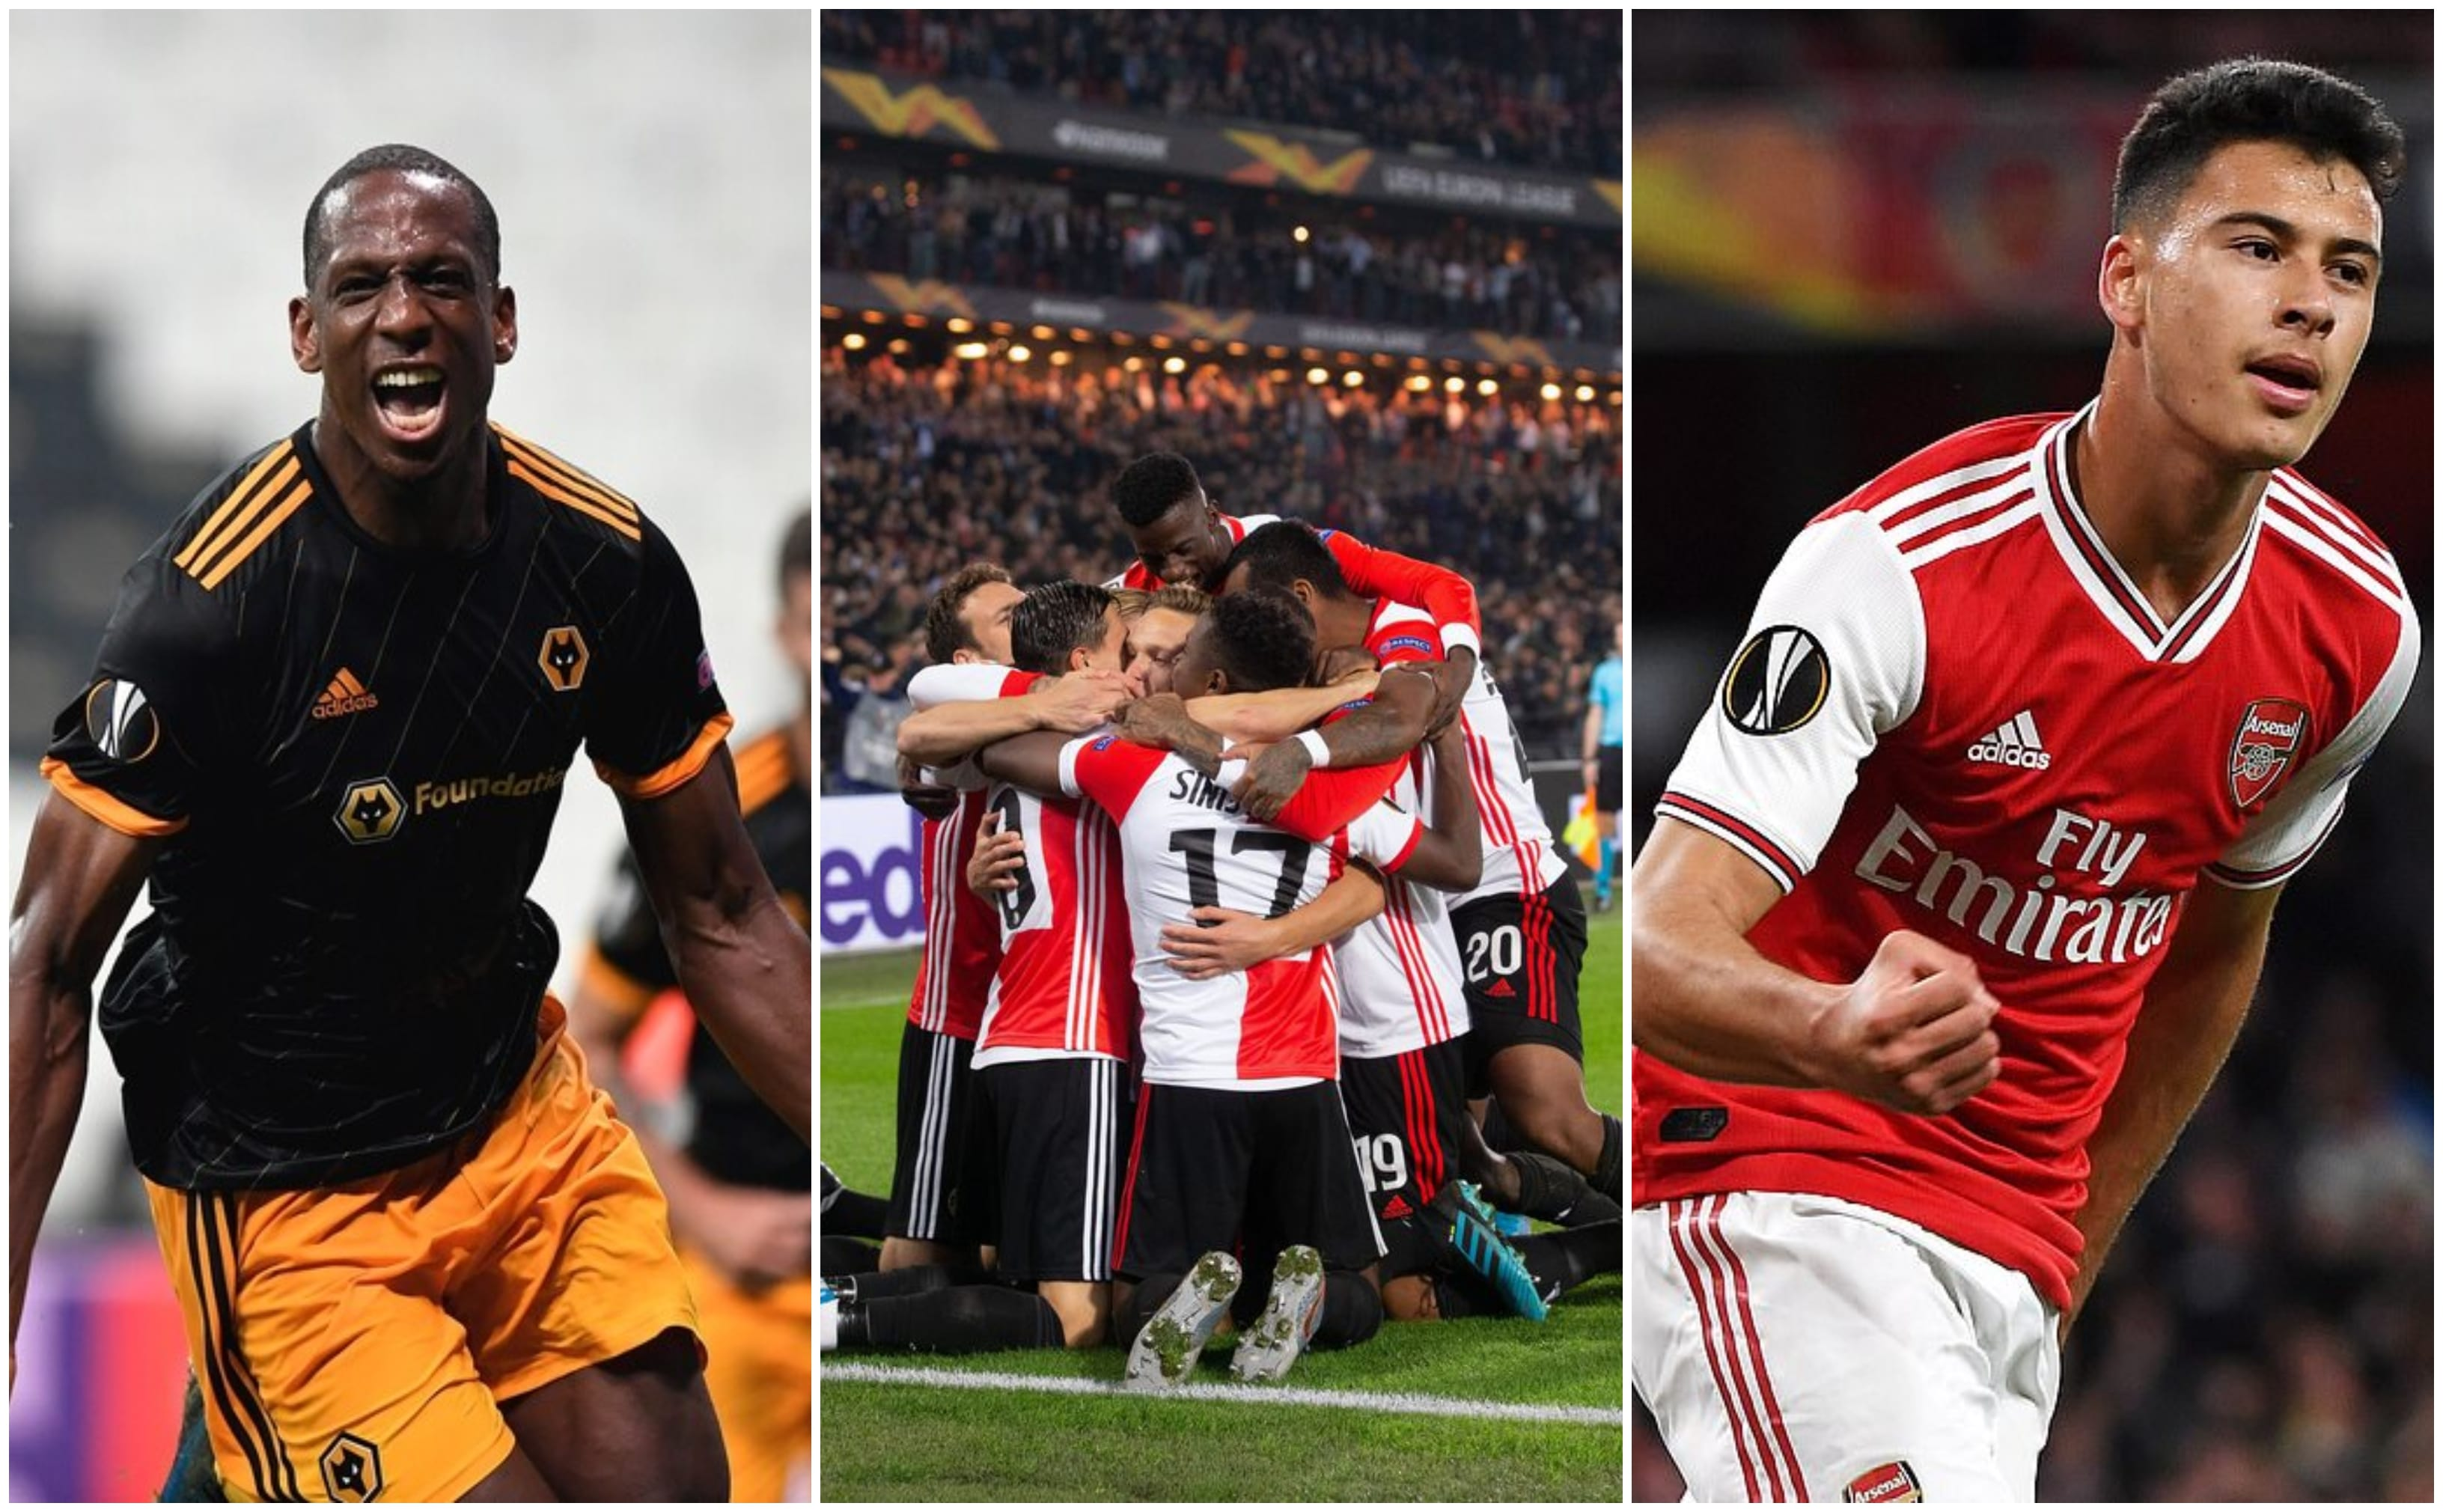 Europa League Round Up for 03.10.2019 – Wolves Keep Roaring, Feyenoord Surprise Win